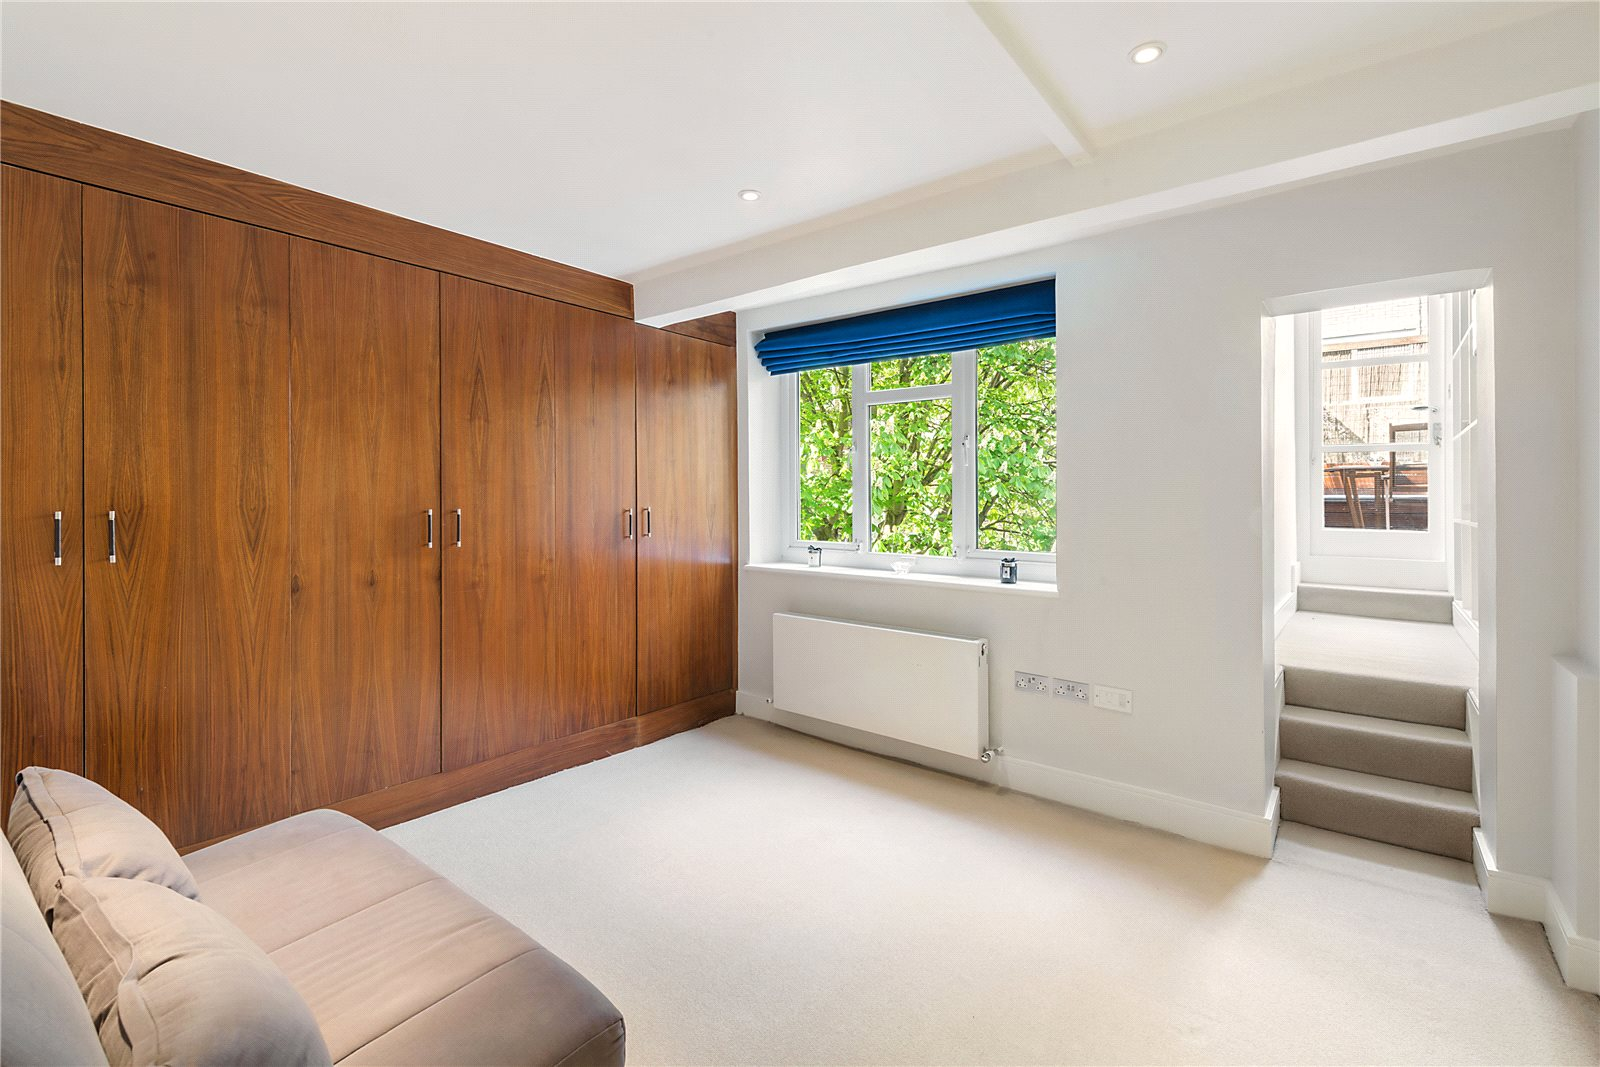 Additional photo for property listing at Bina Gardens, South Kensington, London, SW5 South Kensington, London, England